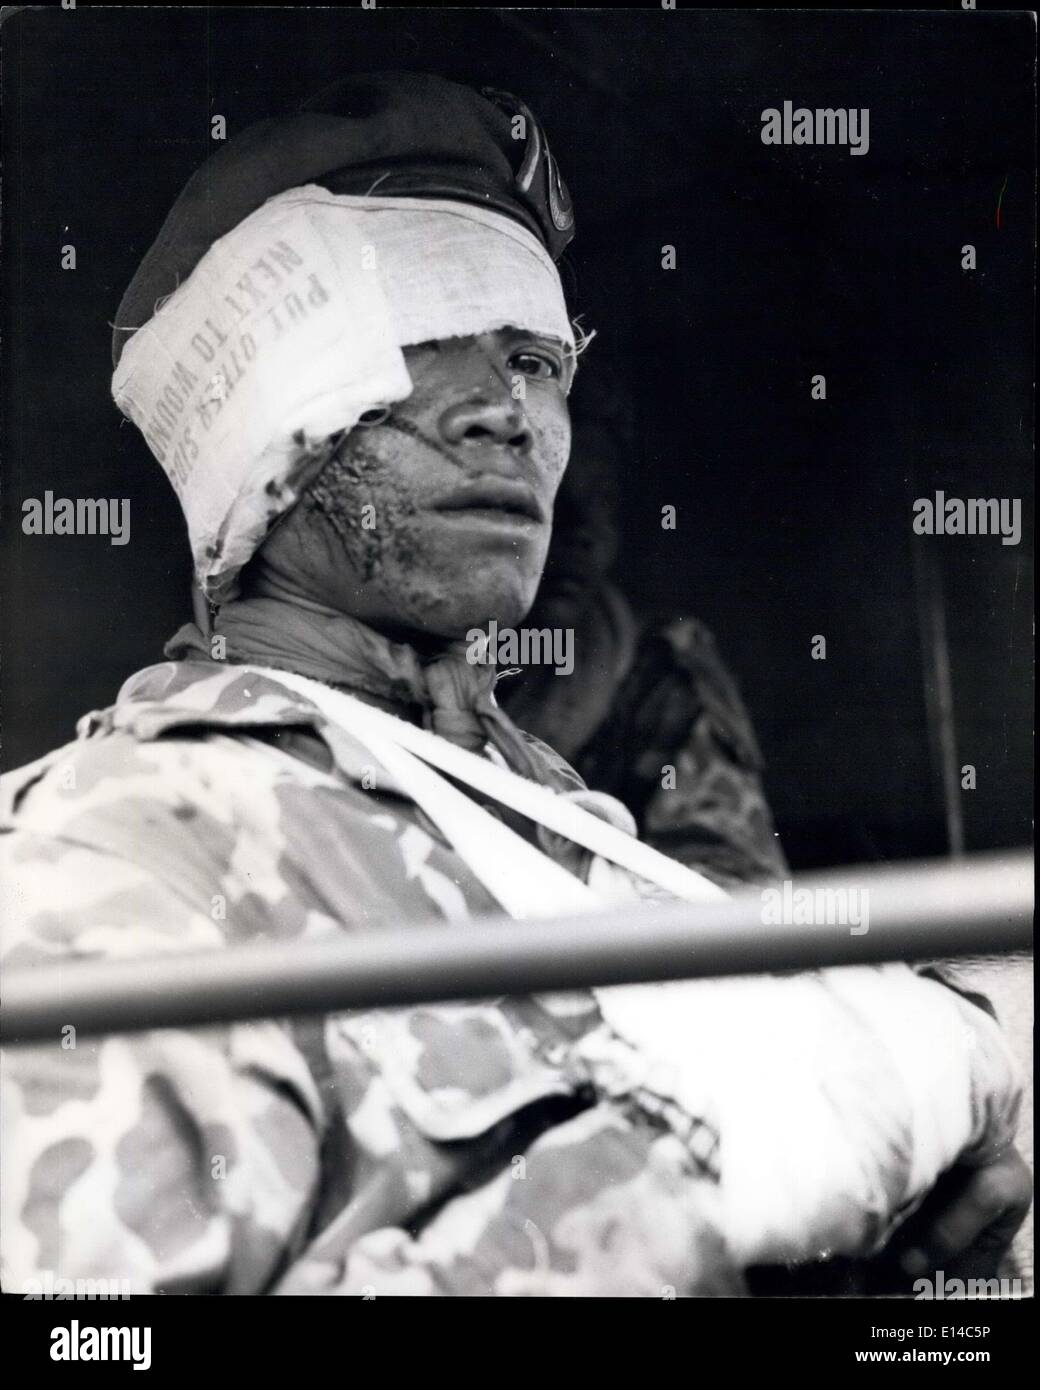 Apr. 17, 2012 - One of the Banteng Raiders, the Government's Commando Force, wounded during the first day's fighting en route from Bukit Tinggi to Suliki. On the first day give were wounded, and four died. Rebel losses are believed to be much greather. - Stock Image